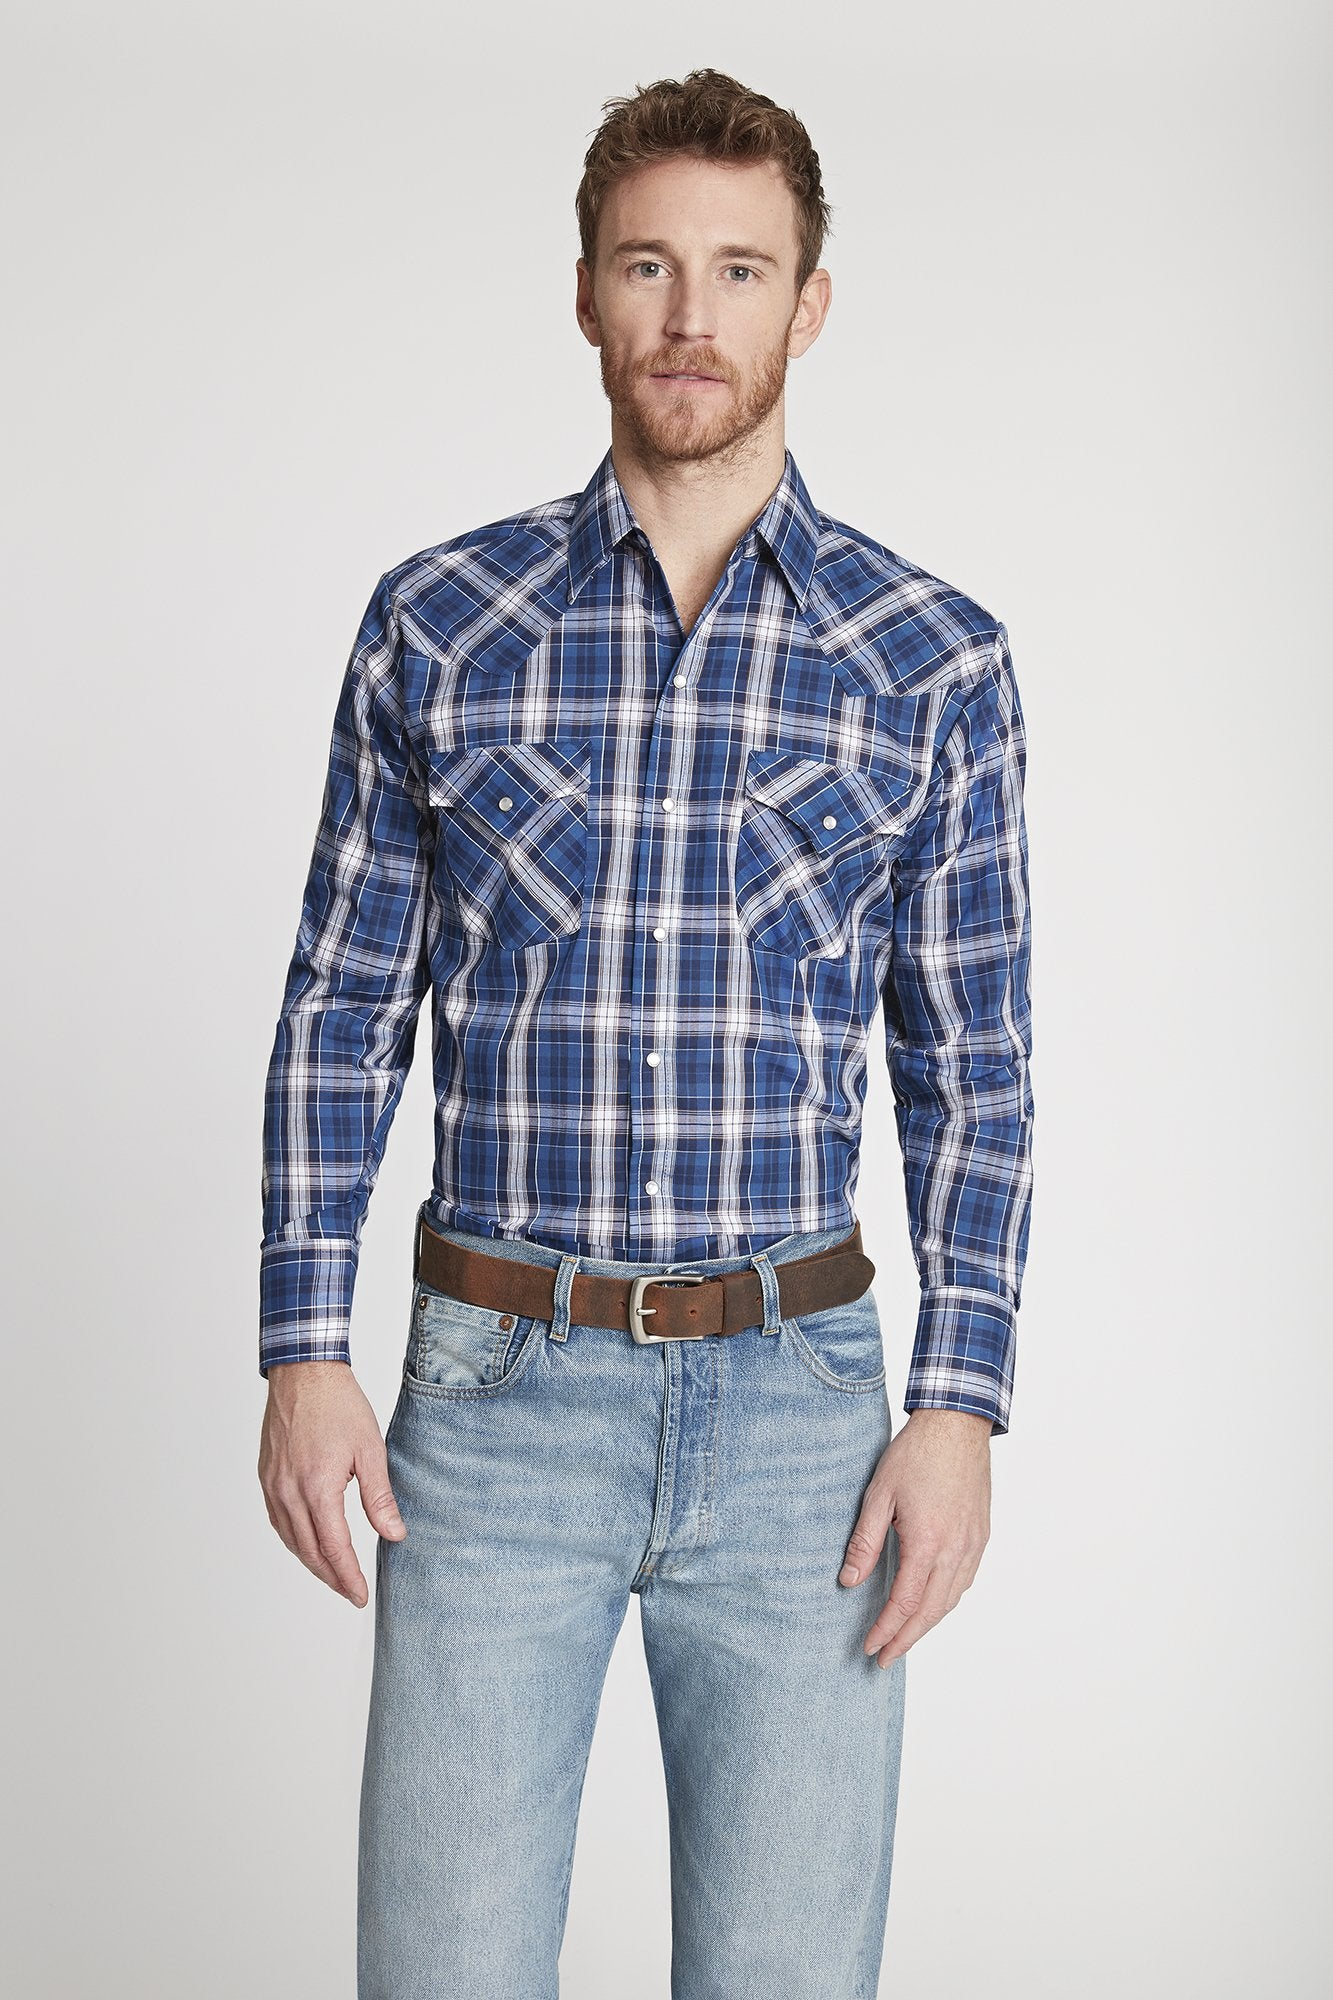 Men's Long Sleeve Plaid Shirt in Blue Plaid